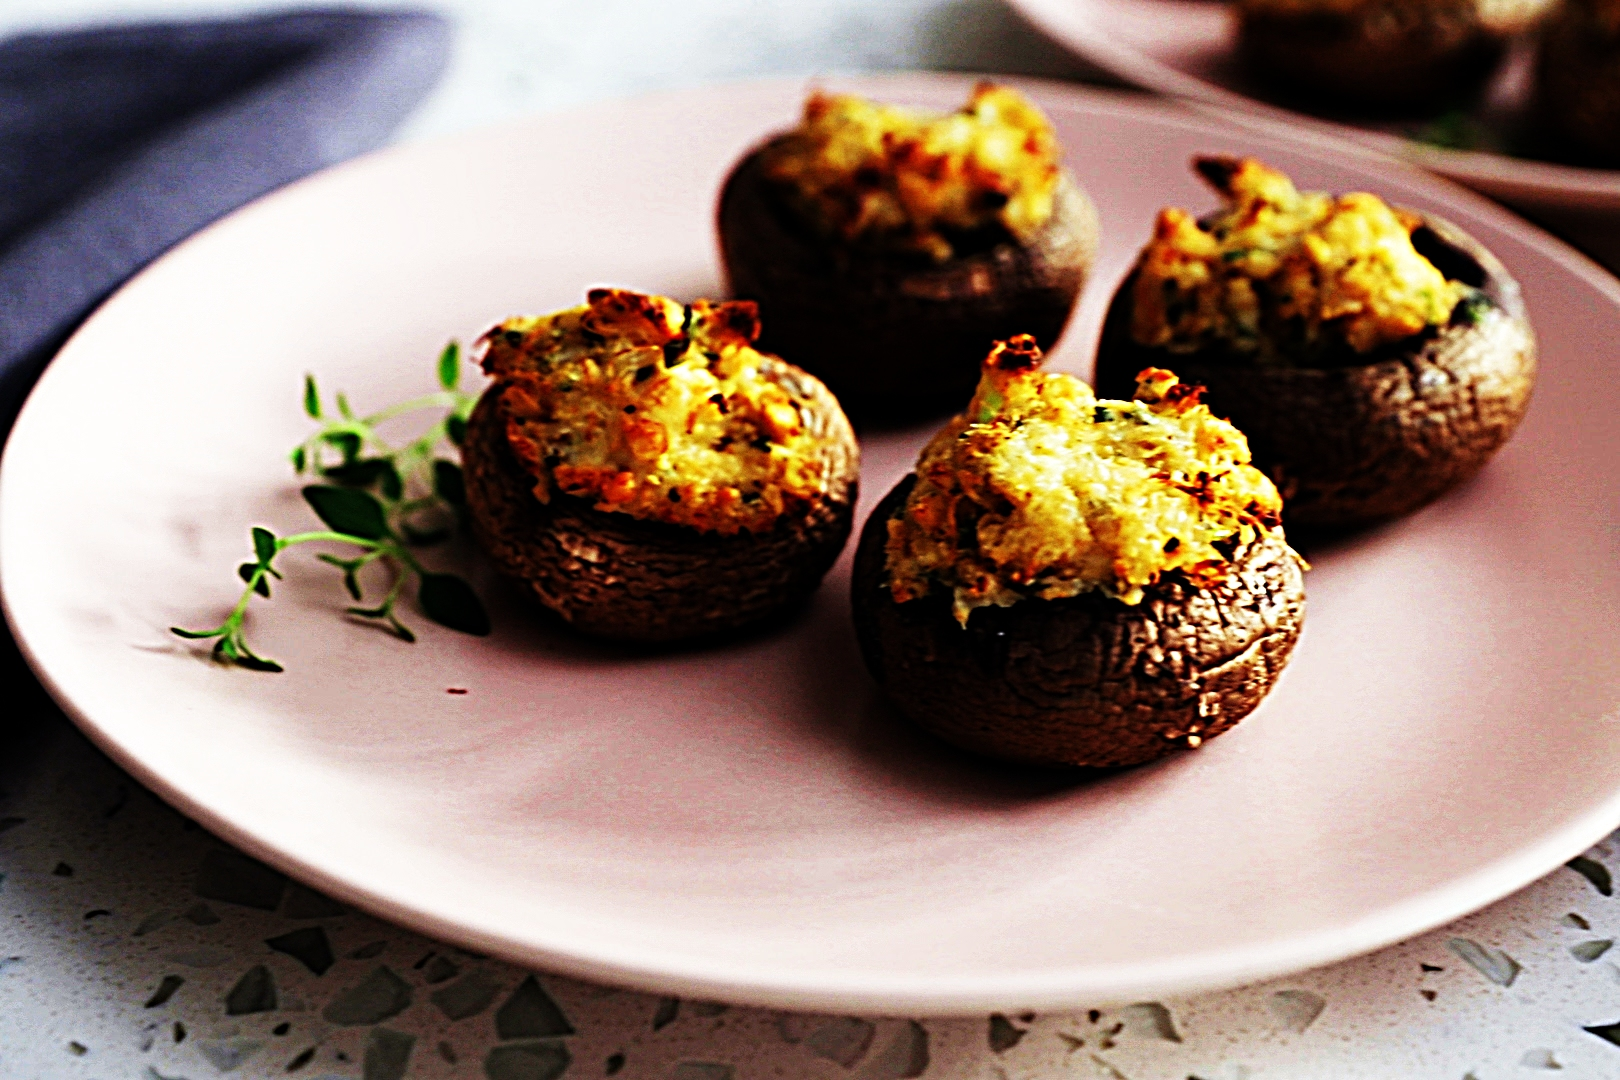 Stupid-Easy Recipe for Crab Stuffed Mushrooms (#1 Top-Rated)